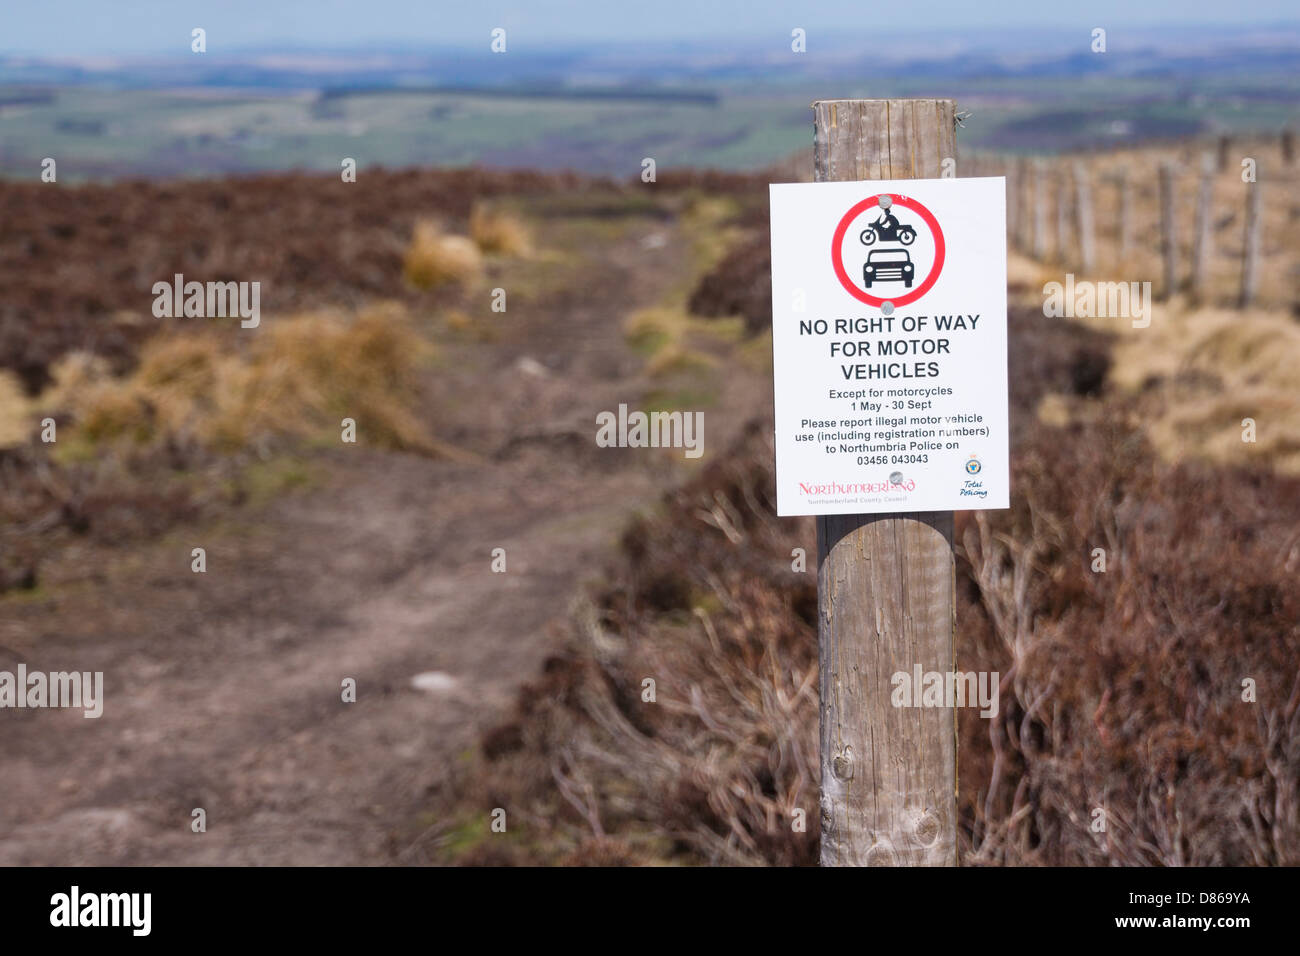 No right of way for motor vehicles sign on Blanchland Moor. - Stock Image